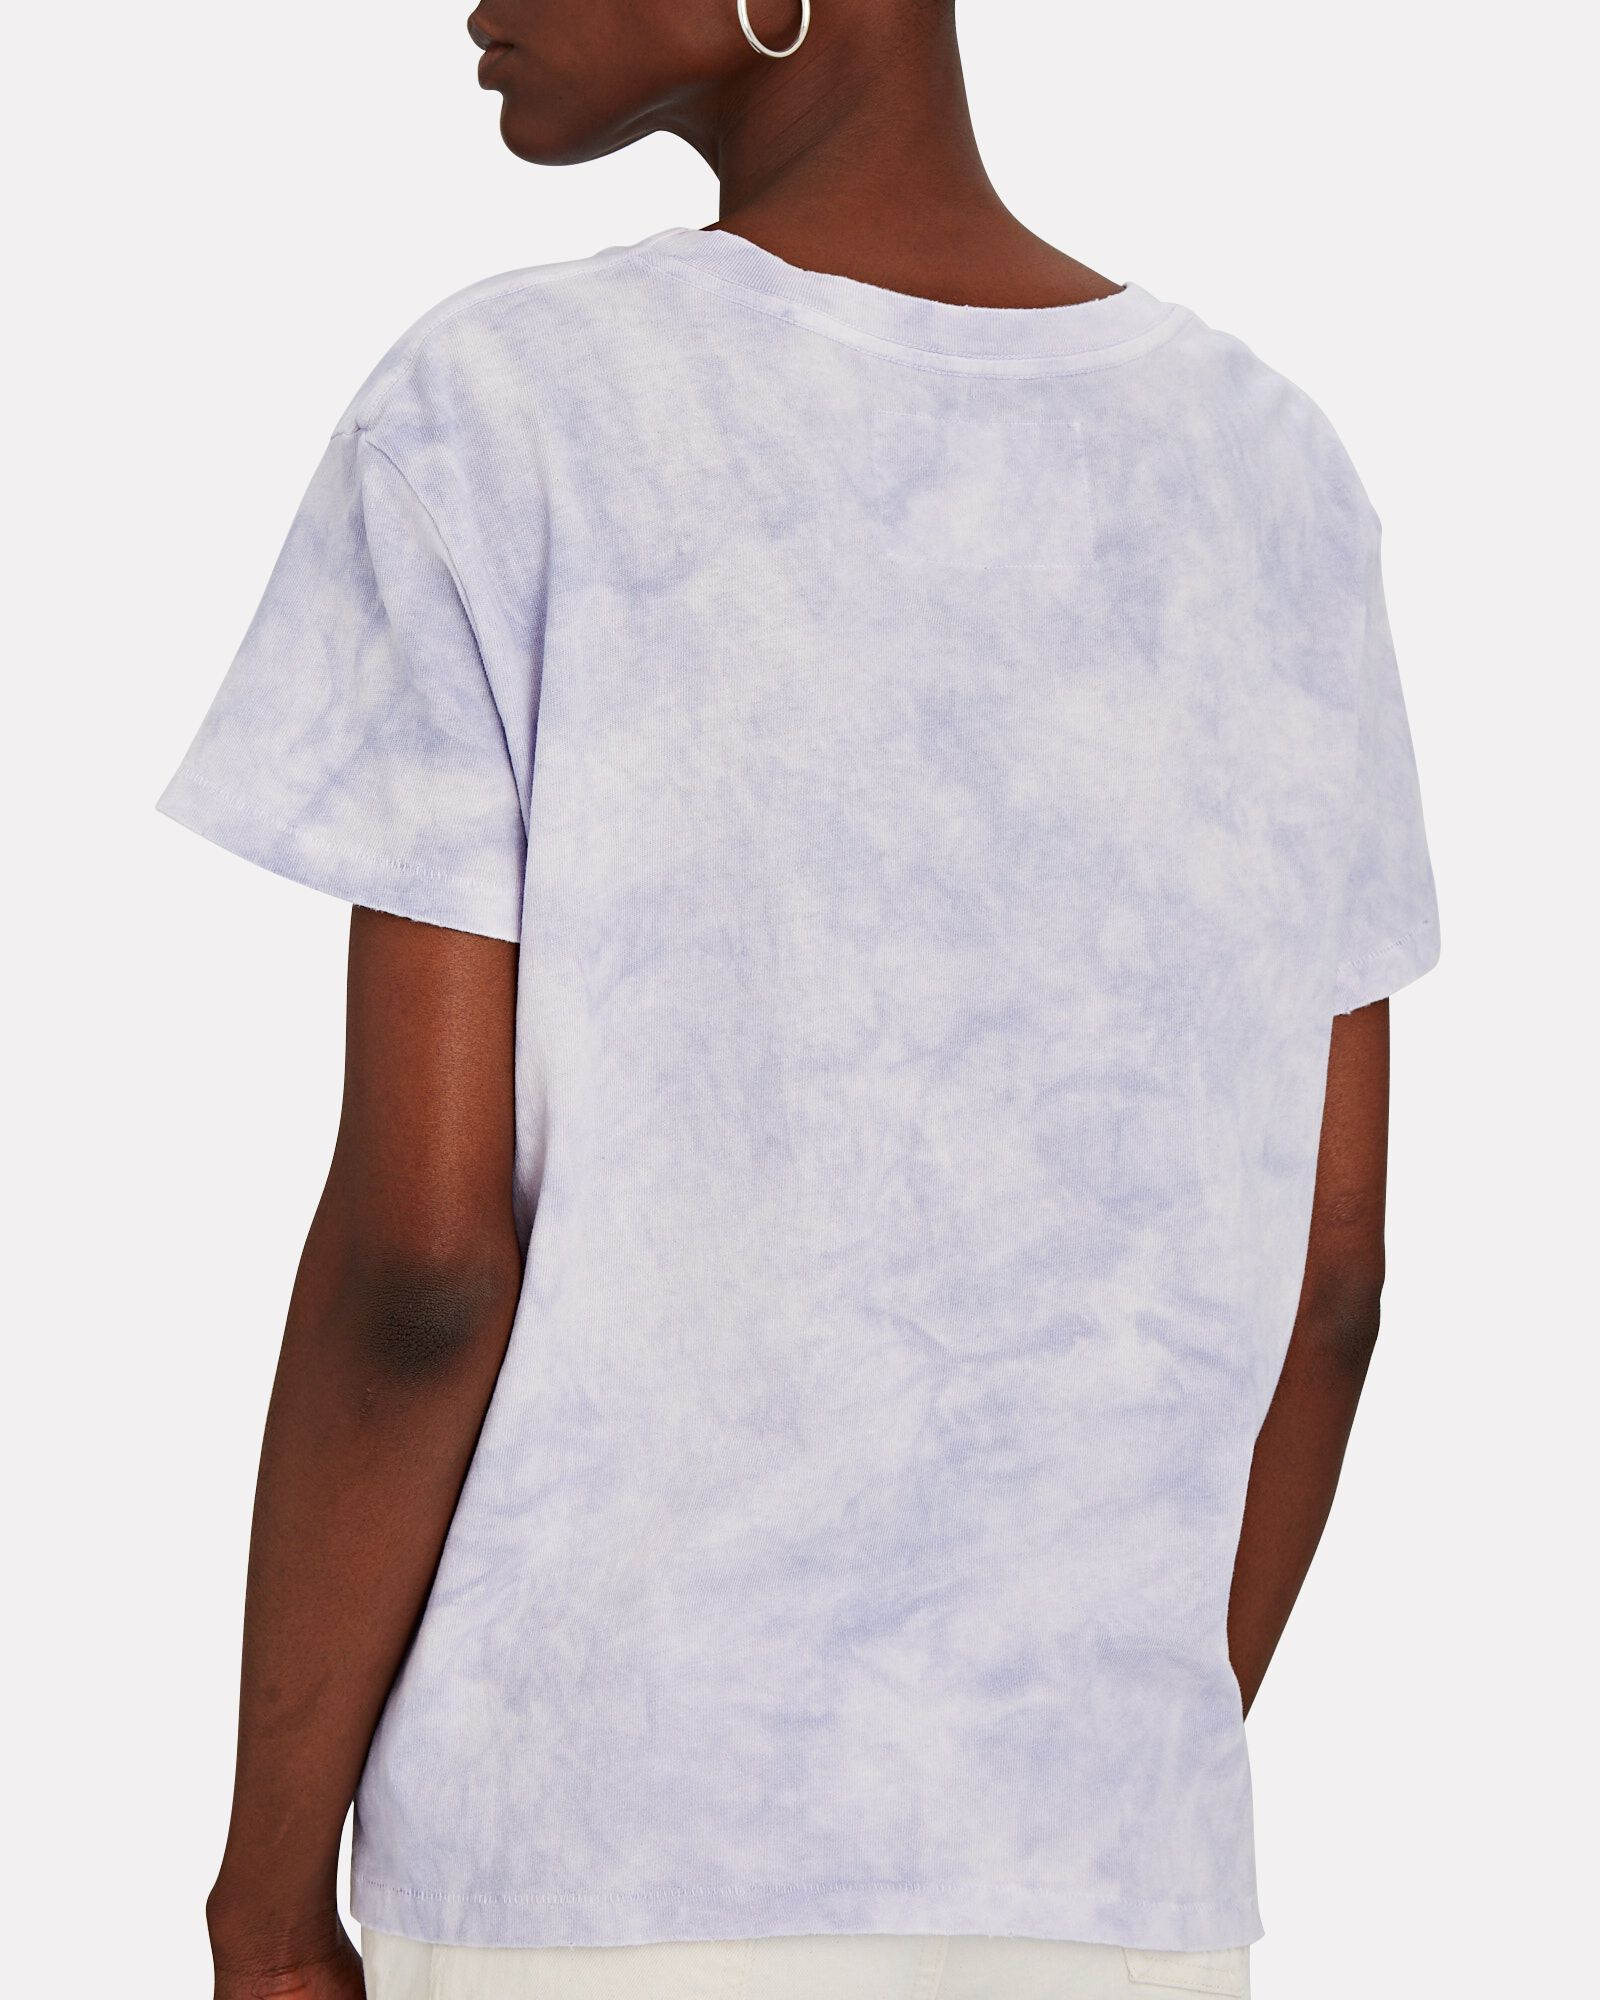 Brady Tie-Dye Cotton Jersey T-Shirt, LIGHT PURPLE, hi-res